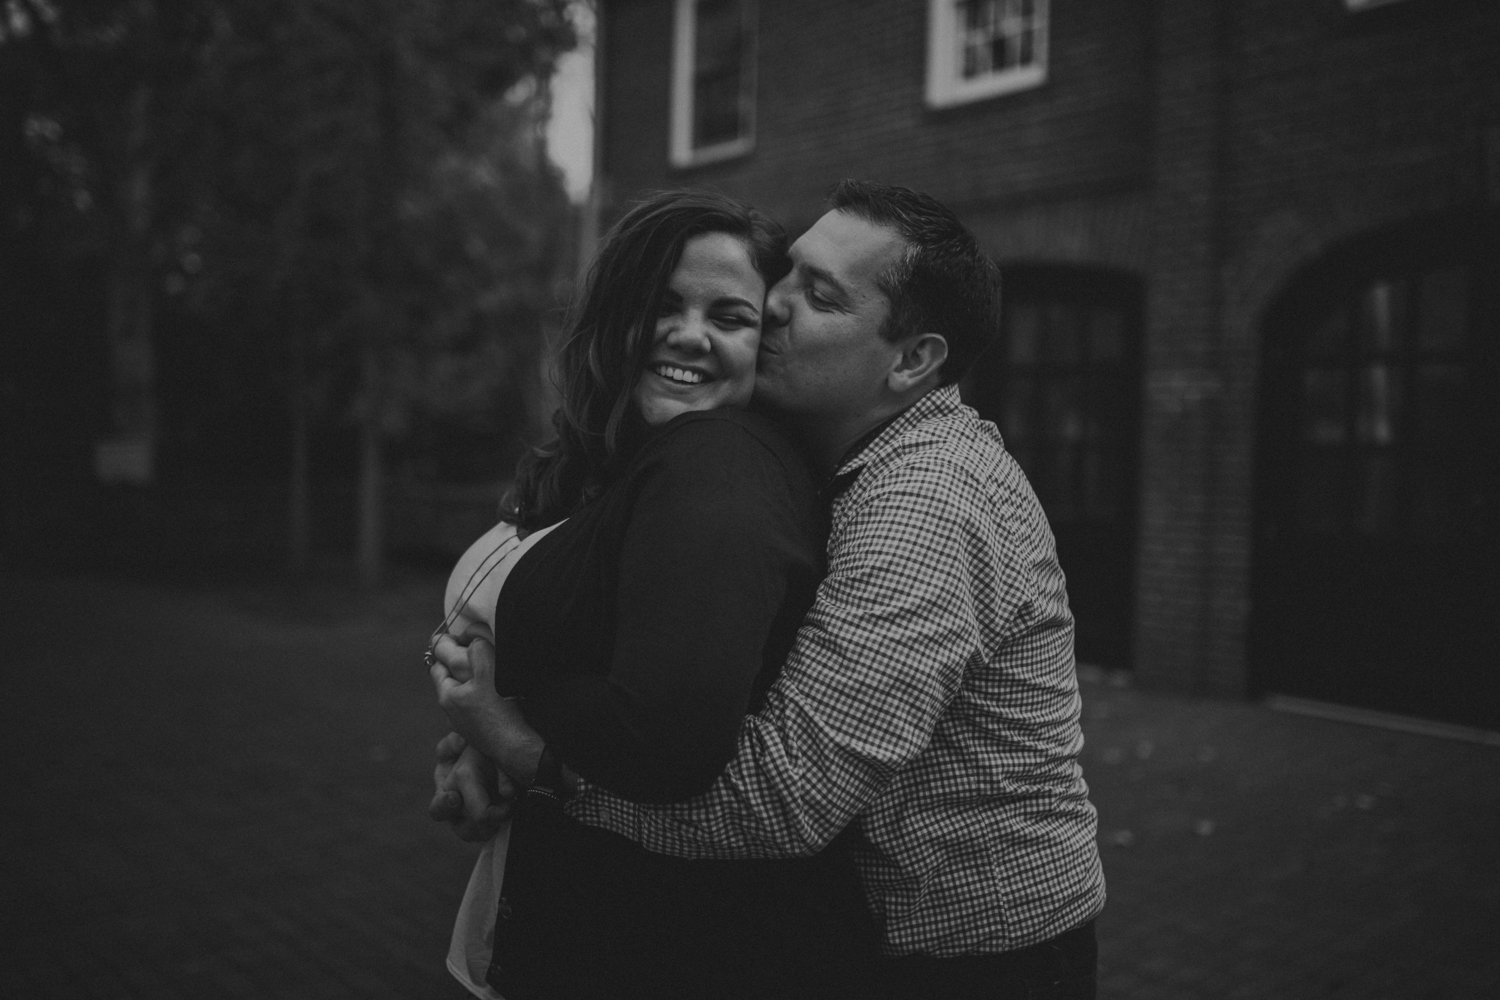 Cheekwood_Botanical_Gardens_engagement_photos-3.jpg